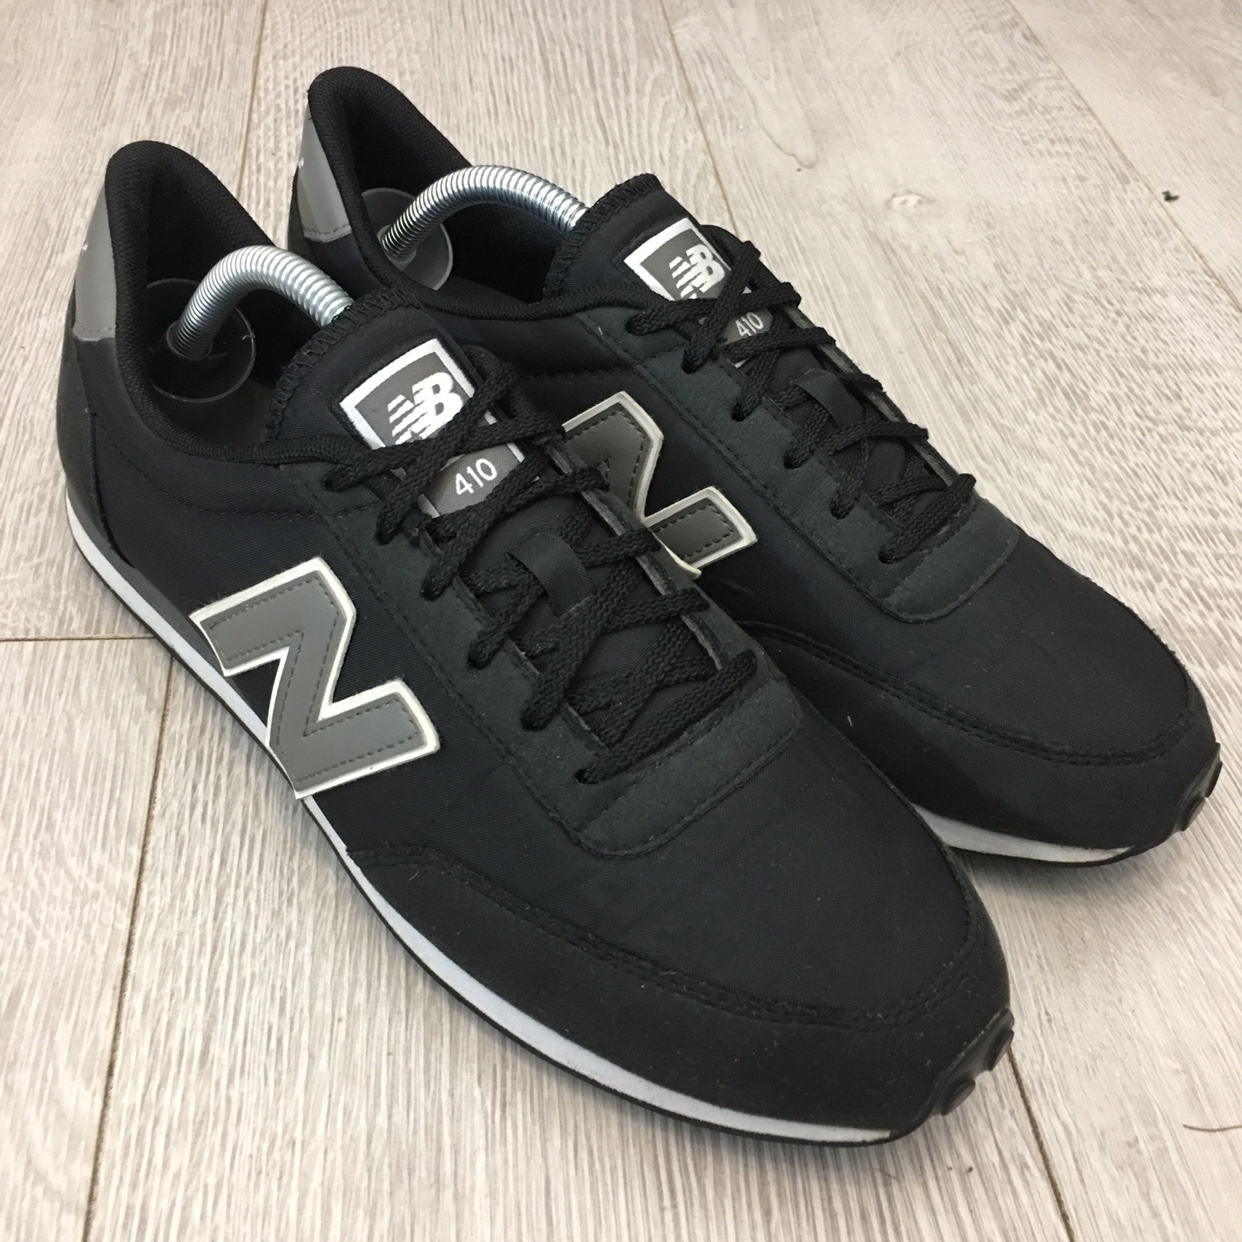 c66076cd4b4 New Balance 410 Black Mens Trainers Size 9.5 EU 44.... - Depop